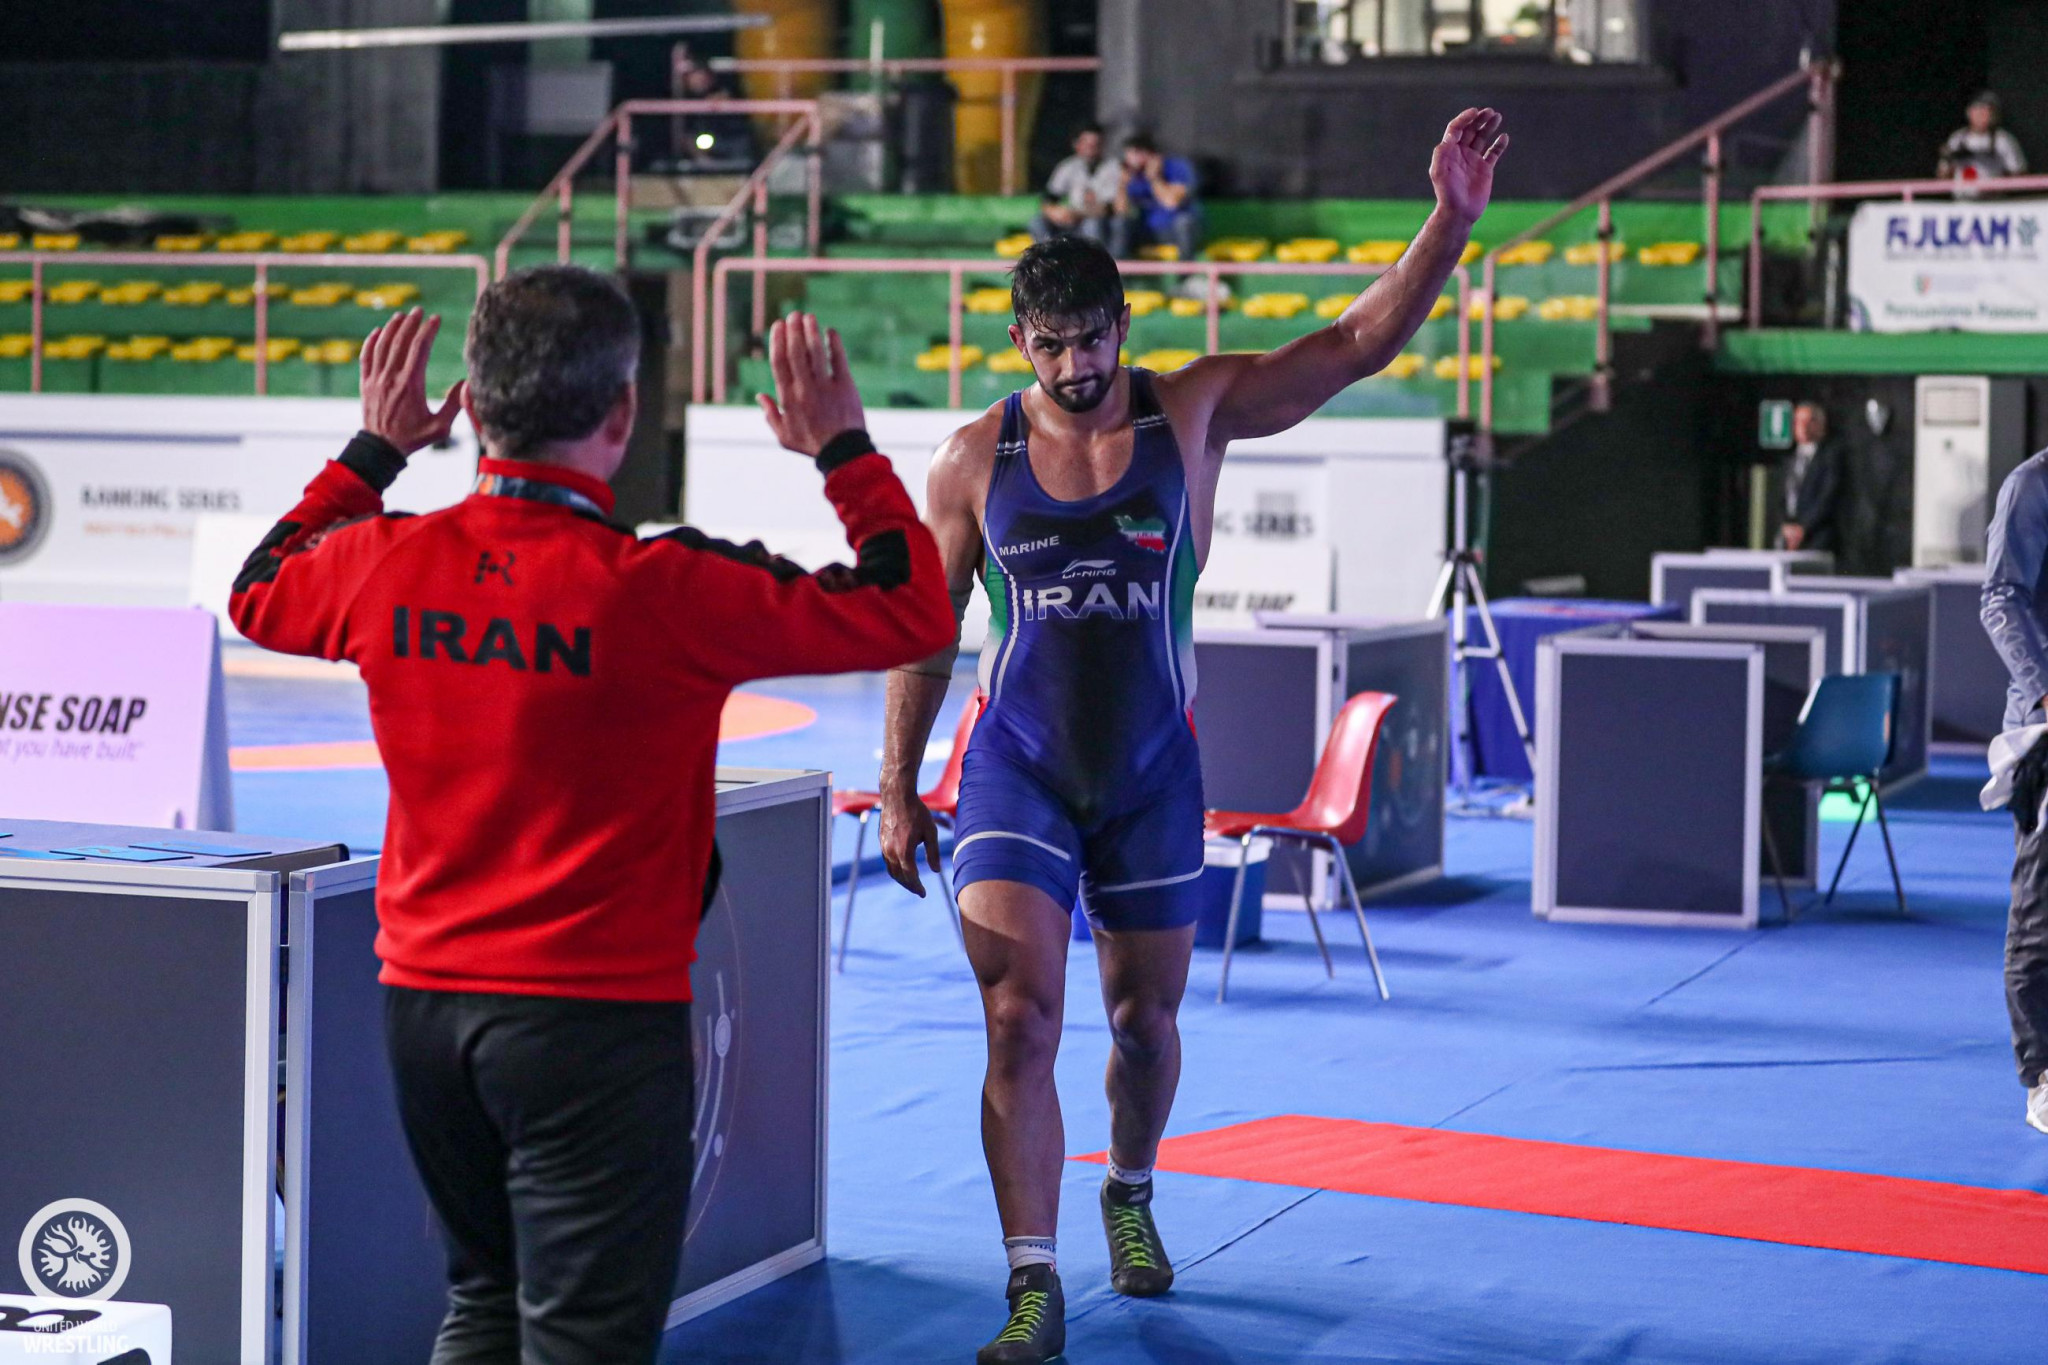 Iran's mighty mountain Mohammadian unbeatable at UWW Ranking Series in Rome